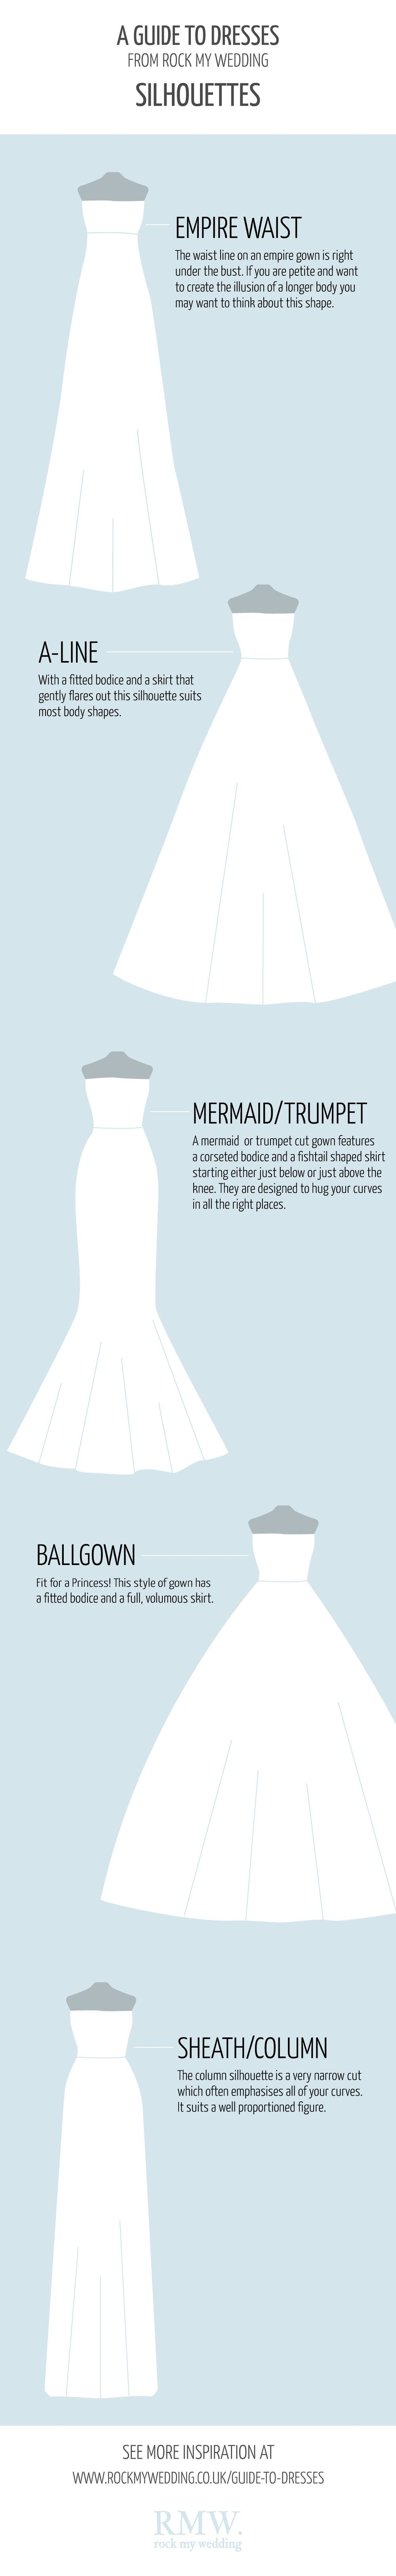 How To Chose Your Wedding Dress A Guide From Top Wedding Dress